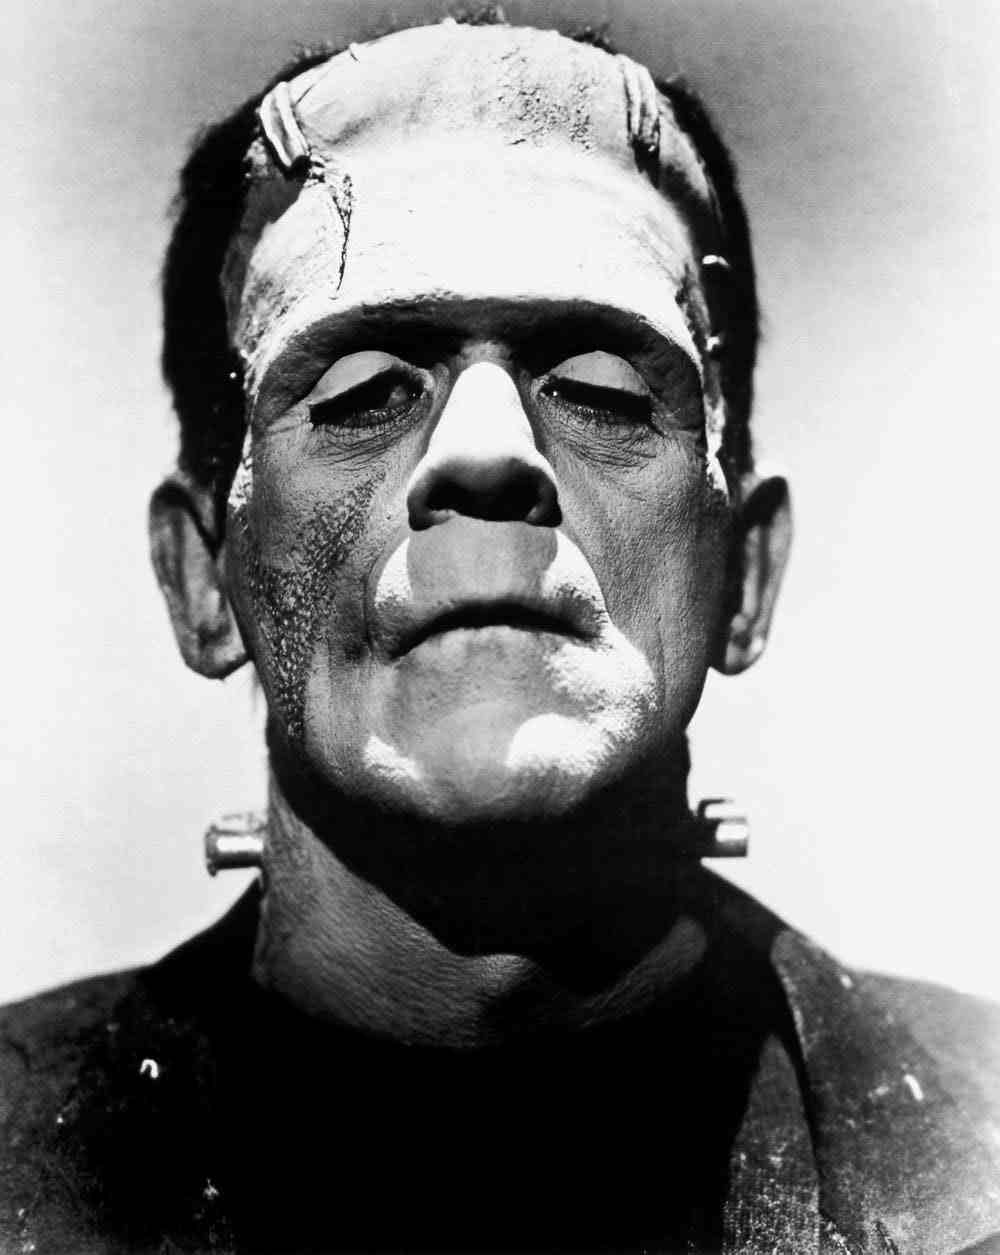 Boris Karloff as Frankenstein's monster